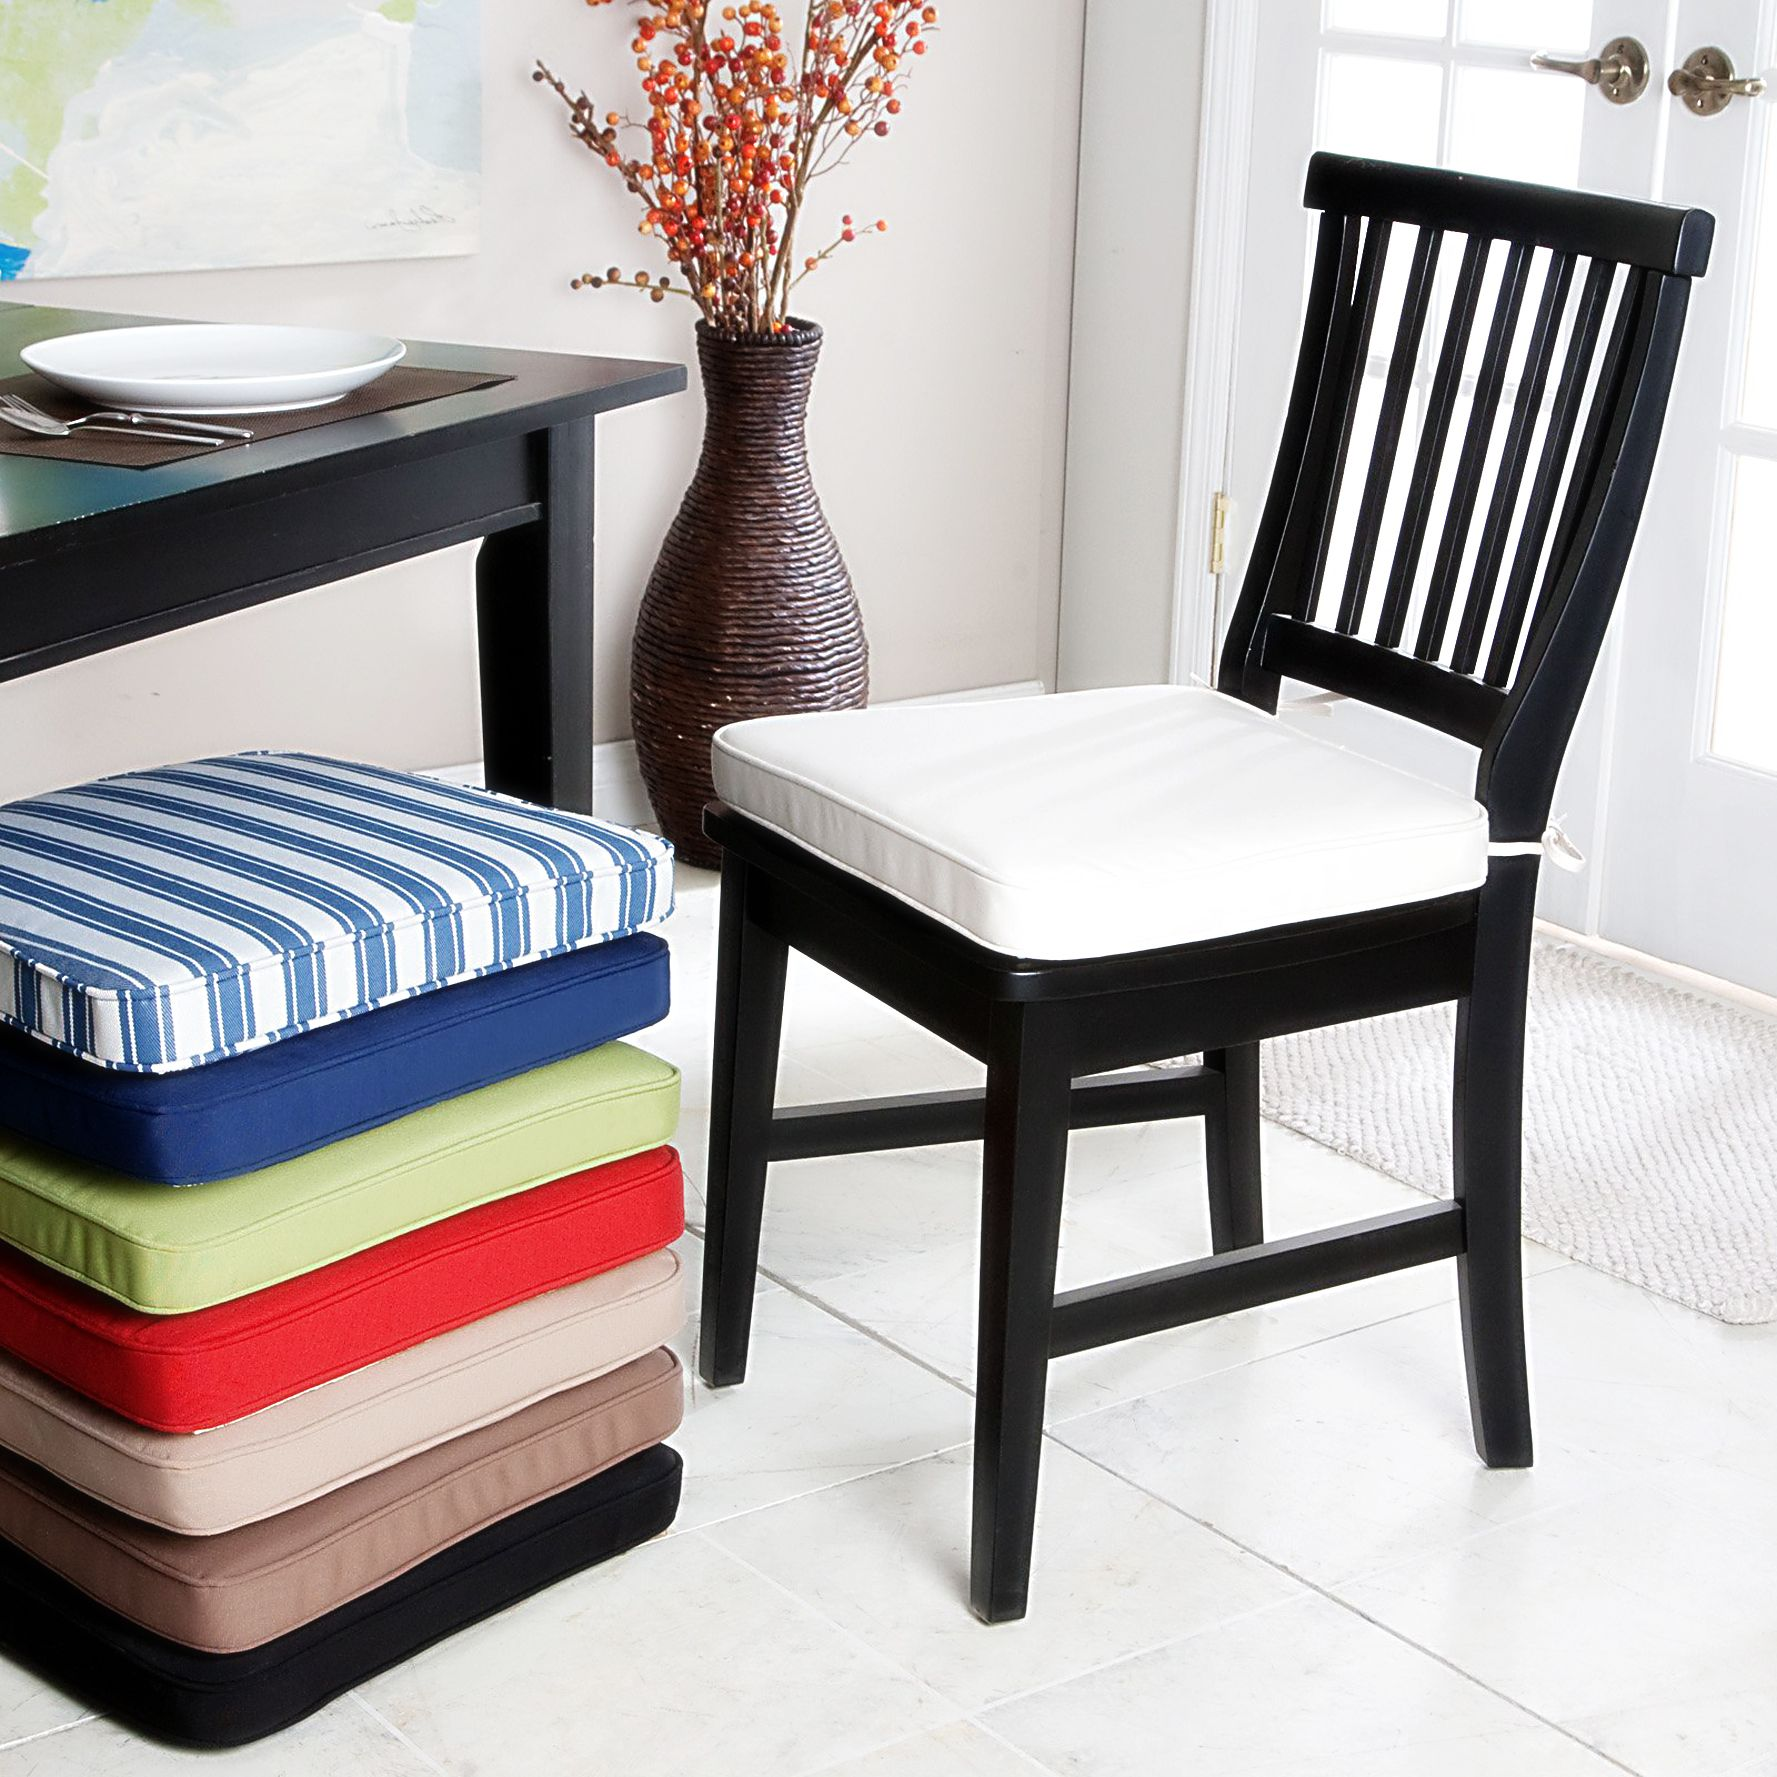 Picture of Kitchen Chair Cushions with Ties